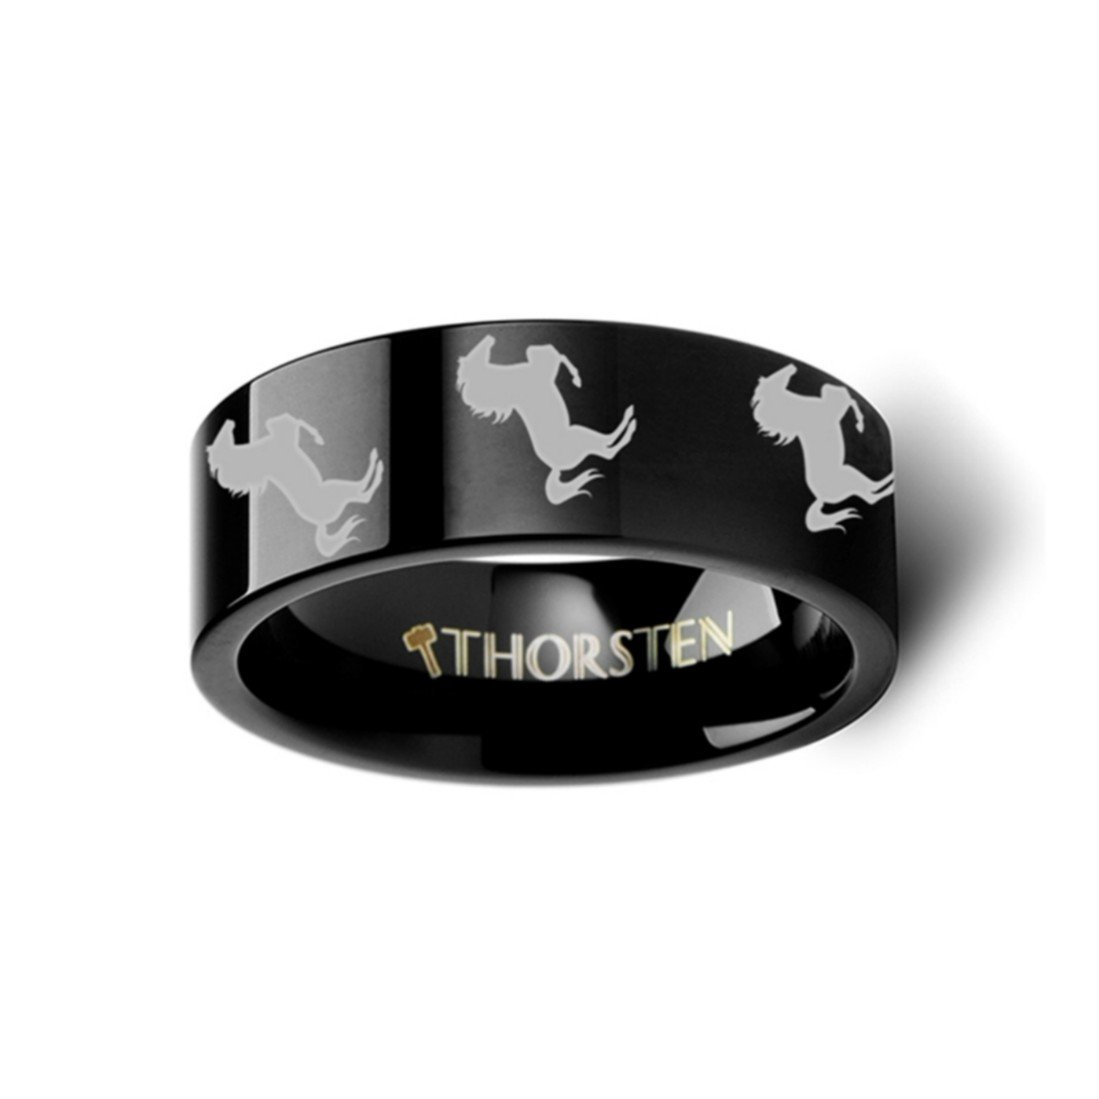 Thorsten Animal Jumping Horse on Hind Legs Equestrian Print Pattern Ring Black Tungsten Ring 8mm Wide Wedding Band from Roy Rose Jewelry